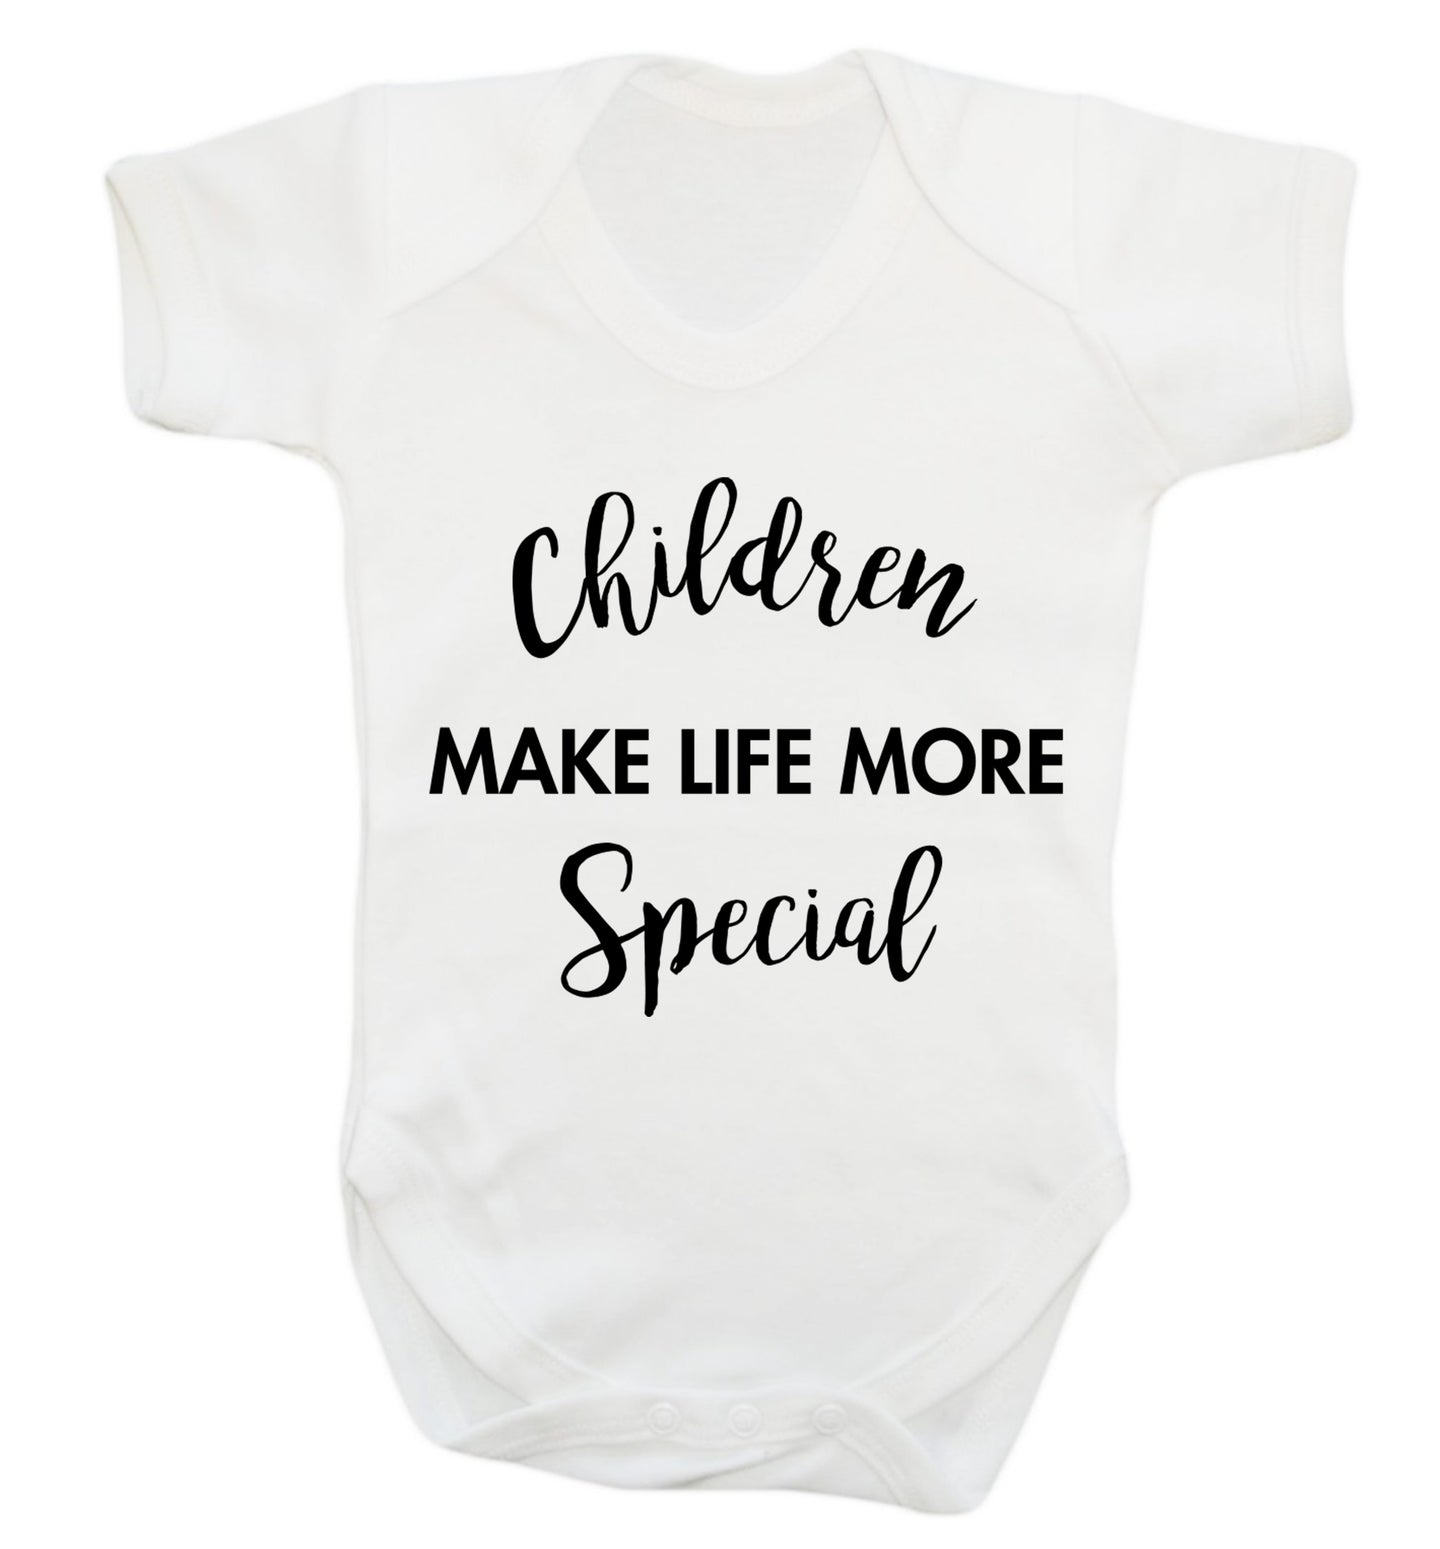 Children make life more special Baby Vest white 18-24 months